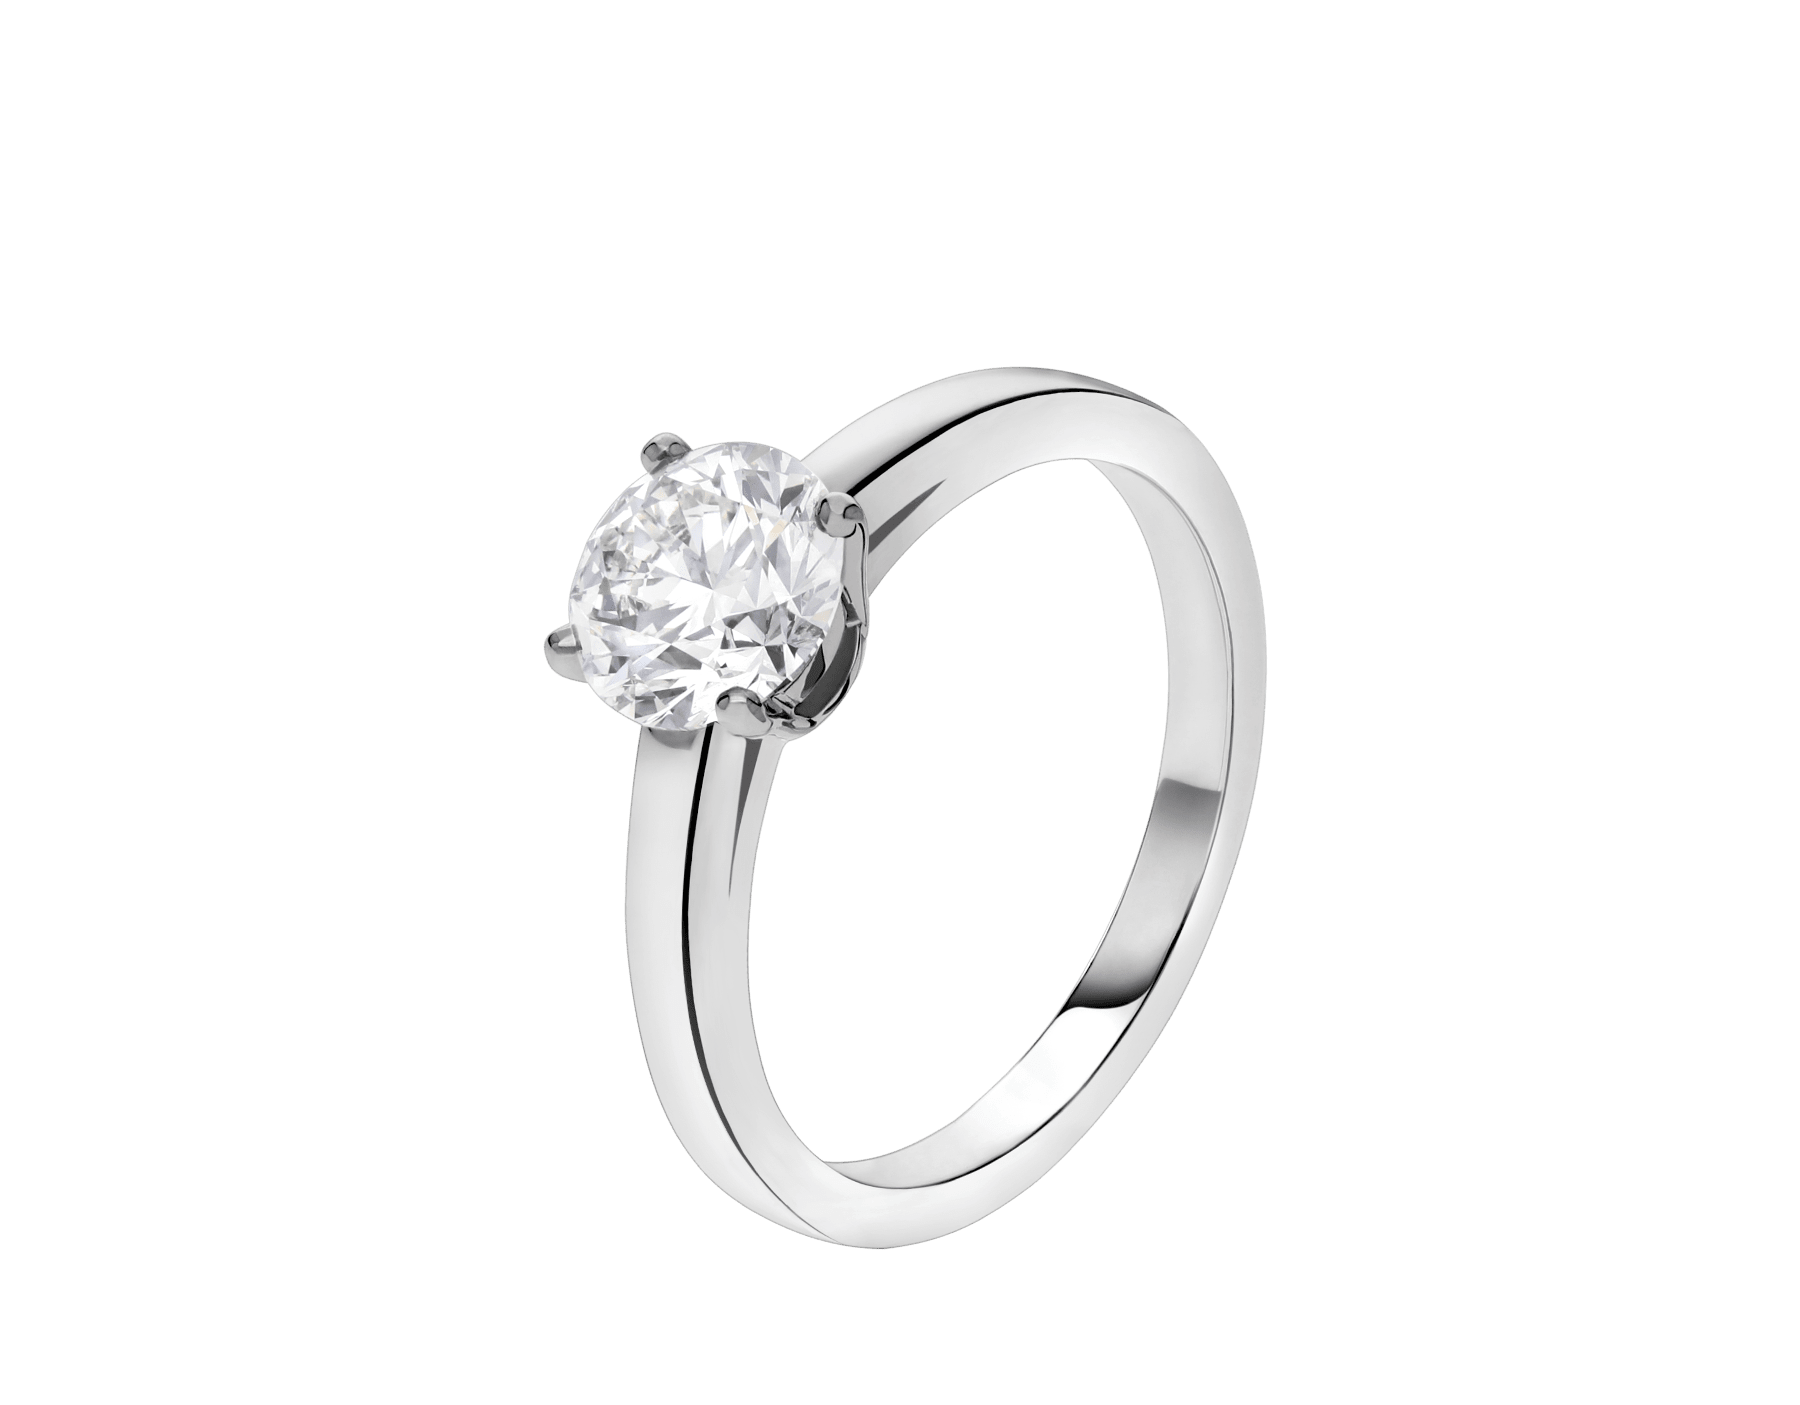 Griffe solitaire ring in platinum with round brilliant cut diamond AN201215 image 1